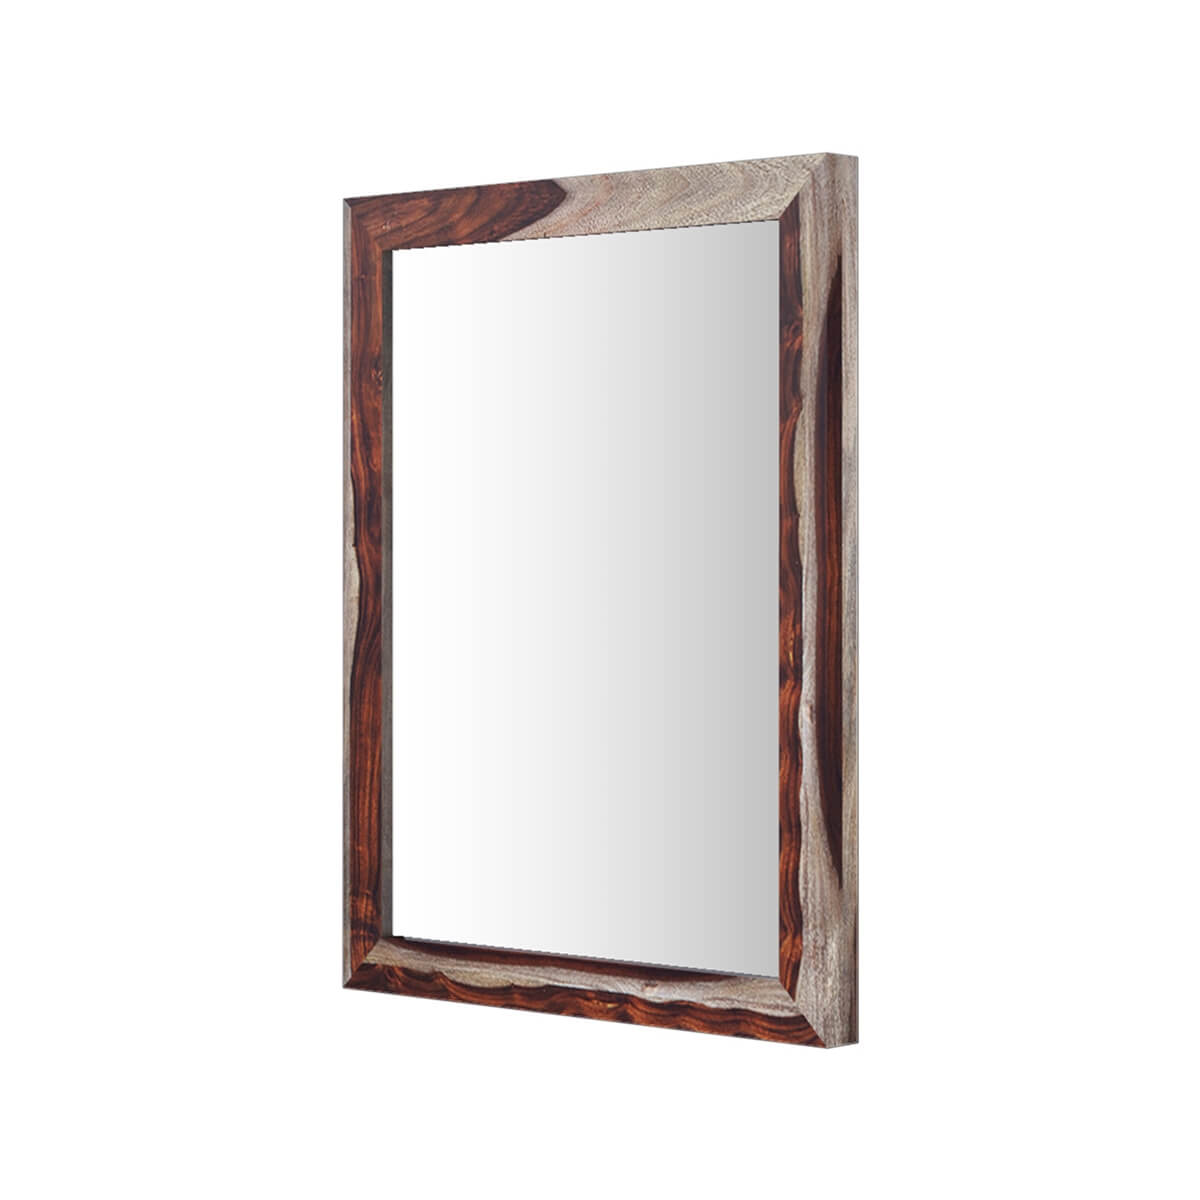 Jamaica handcrafted solid wood contemporary wall mirror frame for Contemporary wall mirrors